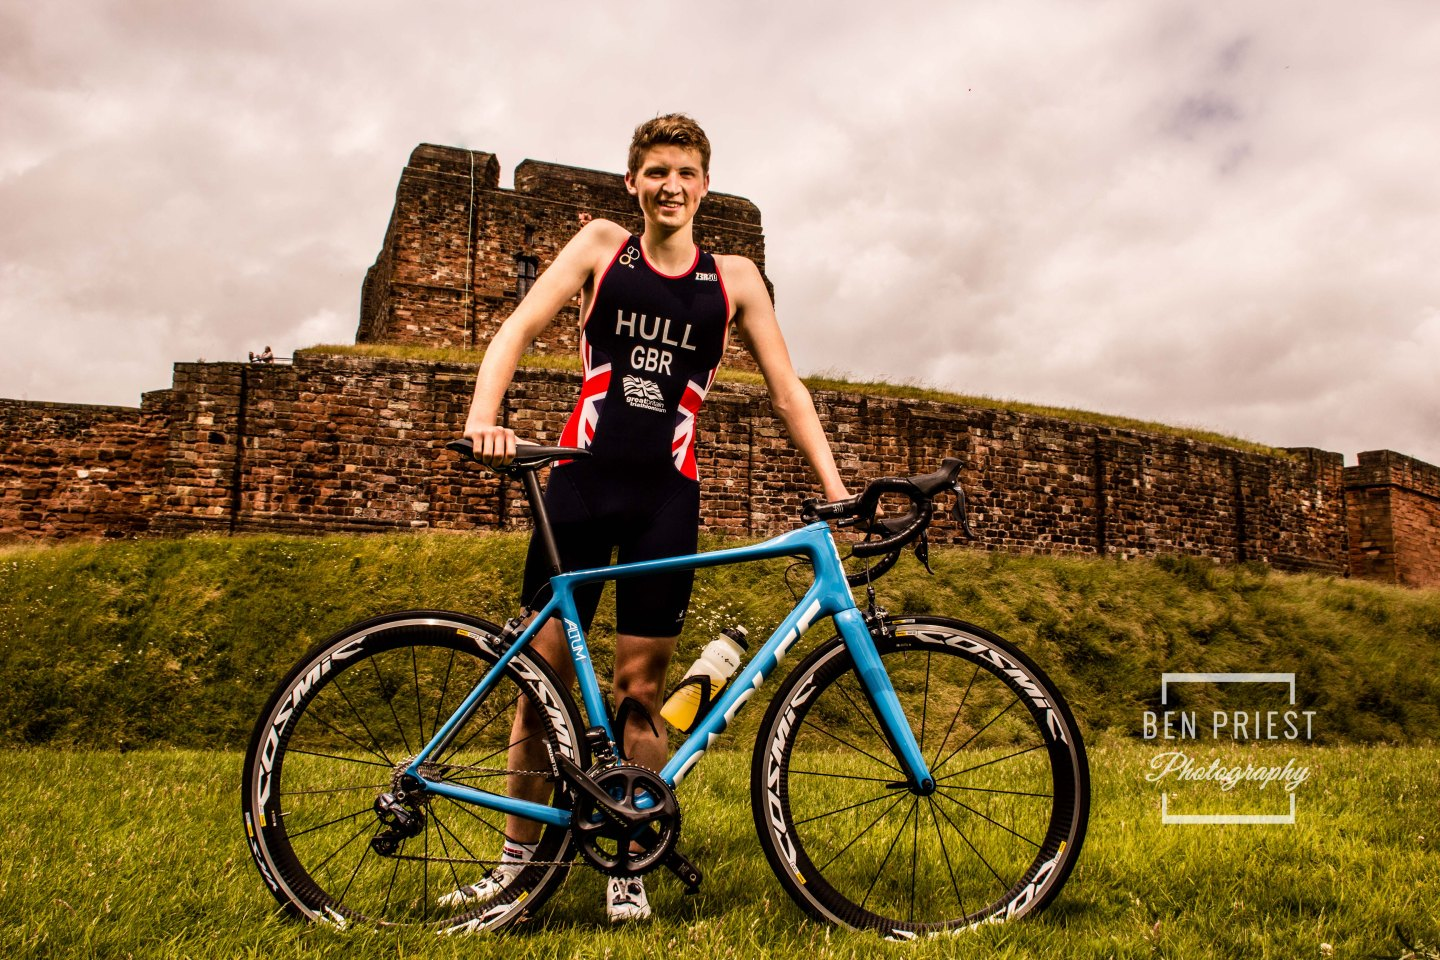 Team GB Triathlete – Jordan Hull – Cumbrian Ambassador for the World Health Innovation Summit no.5